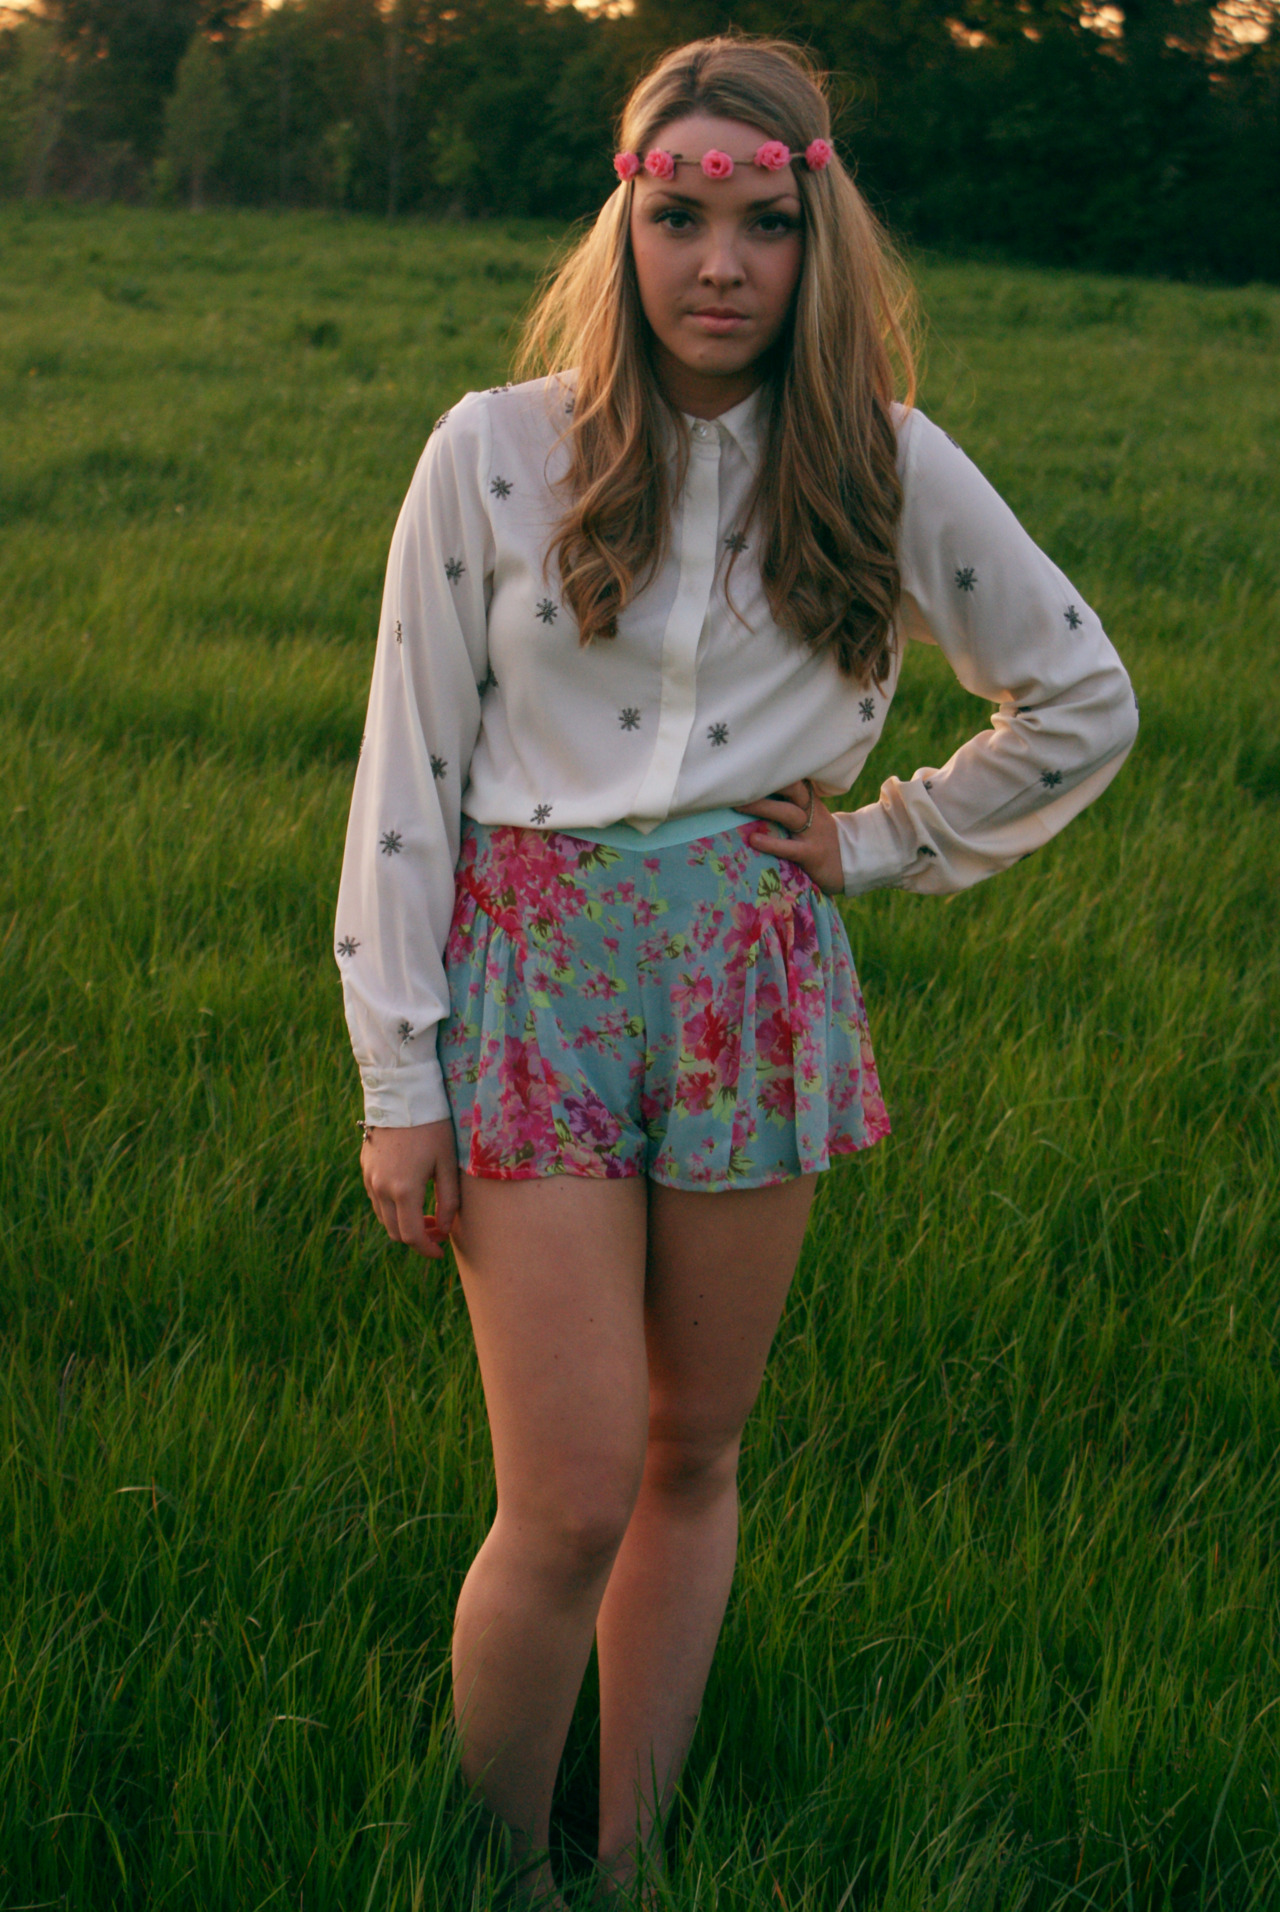 Friday nights photo shoot, boho